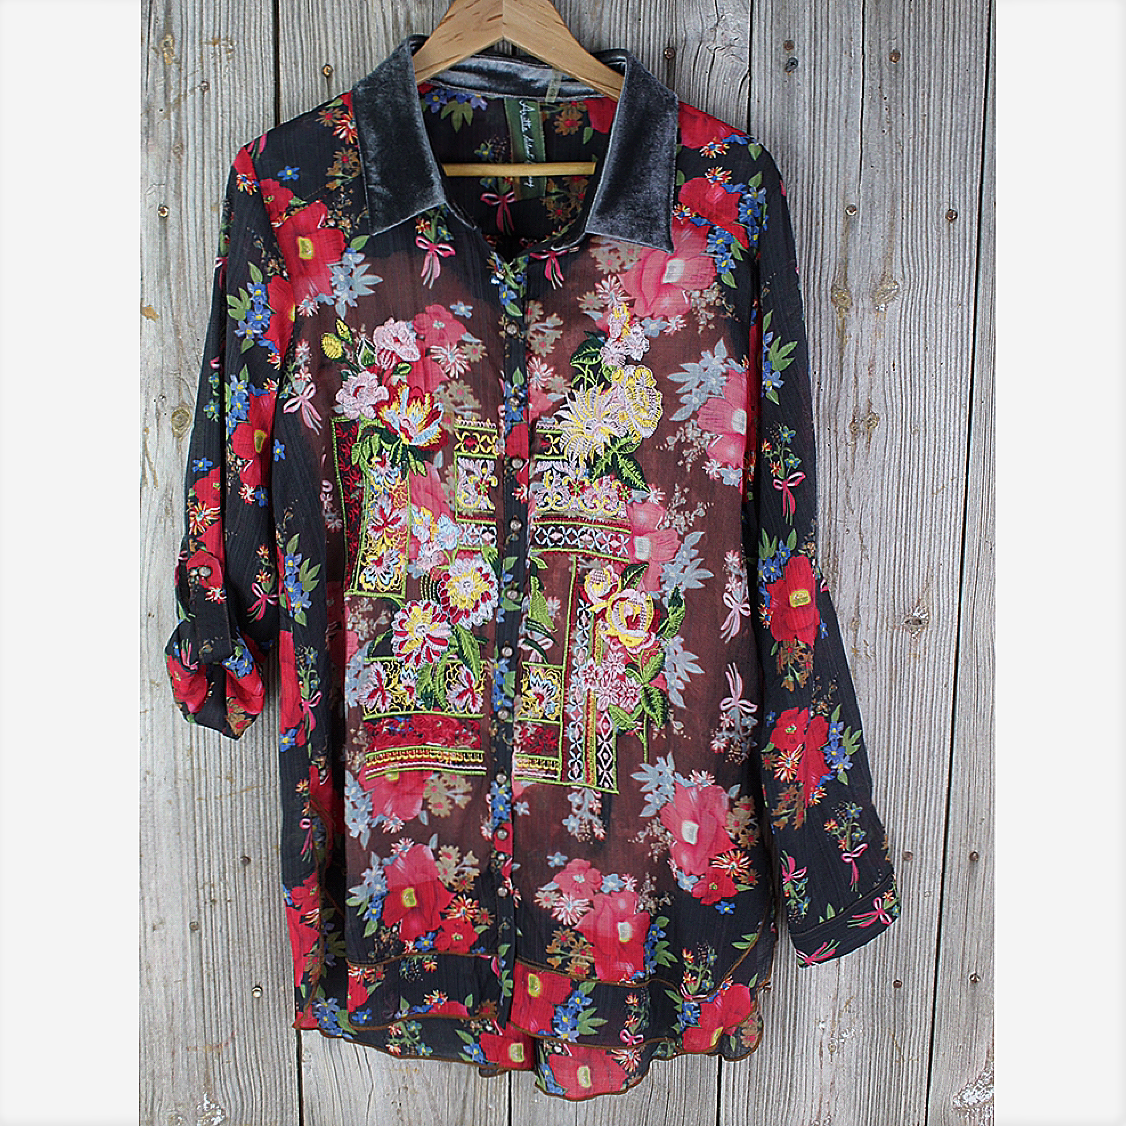 NIght Shimmers Blouse from Aratta